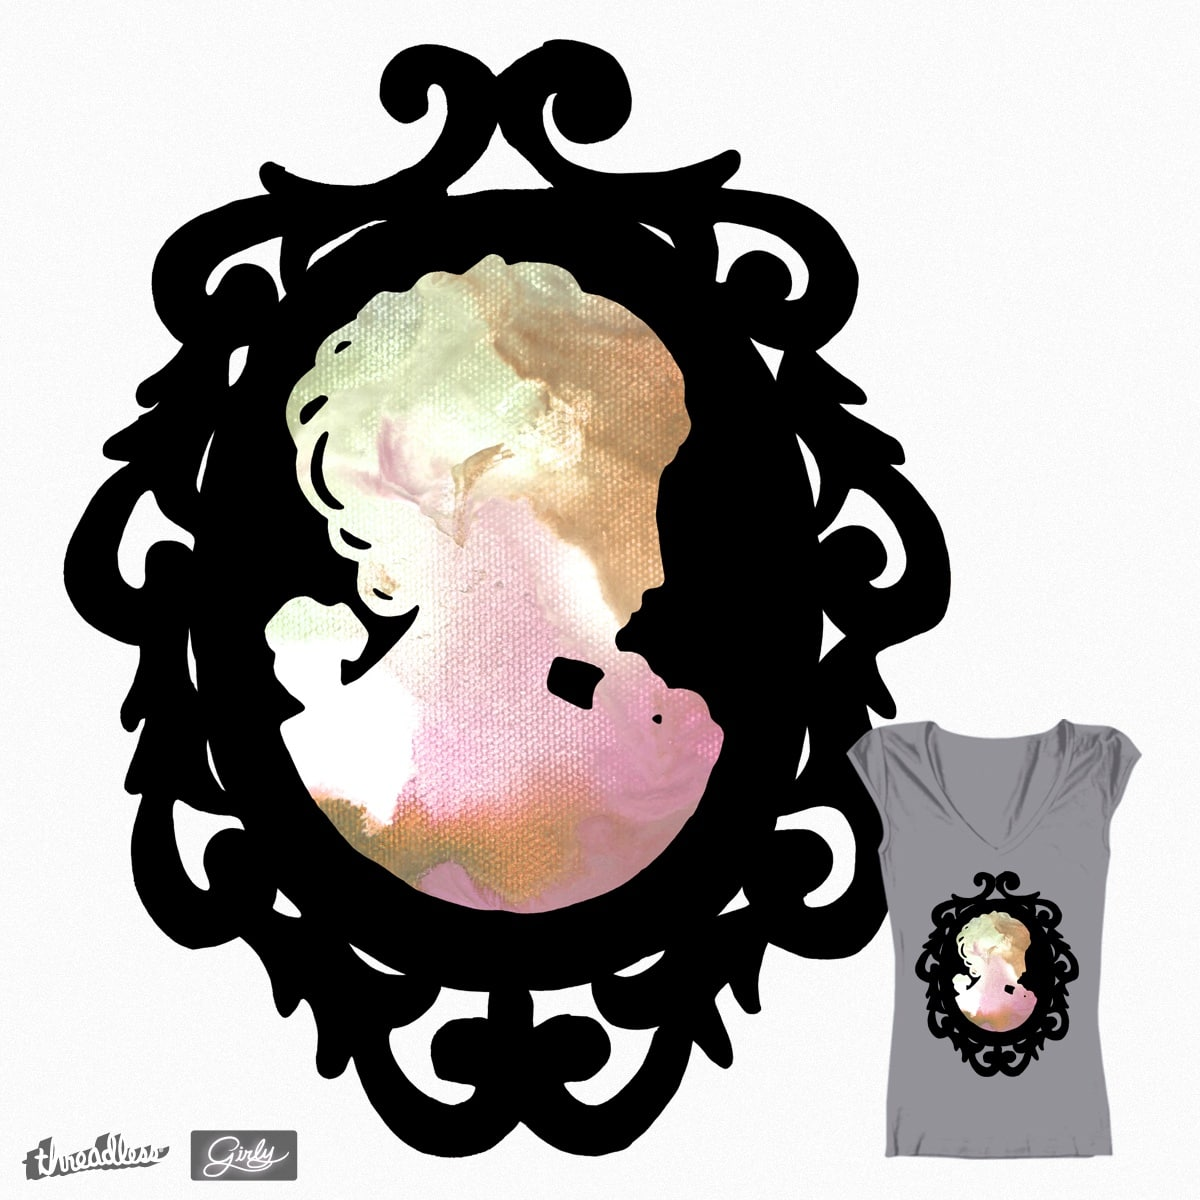 Colorful Cameo by rachelzed on Threadless